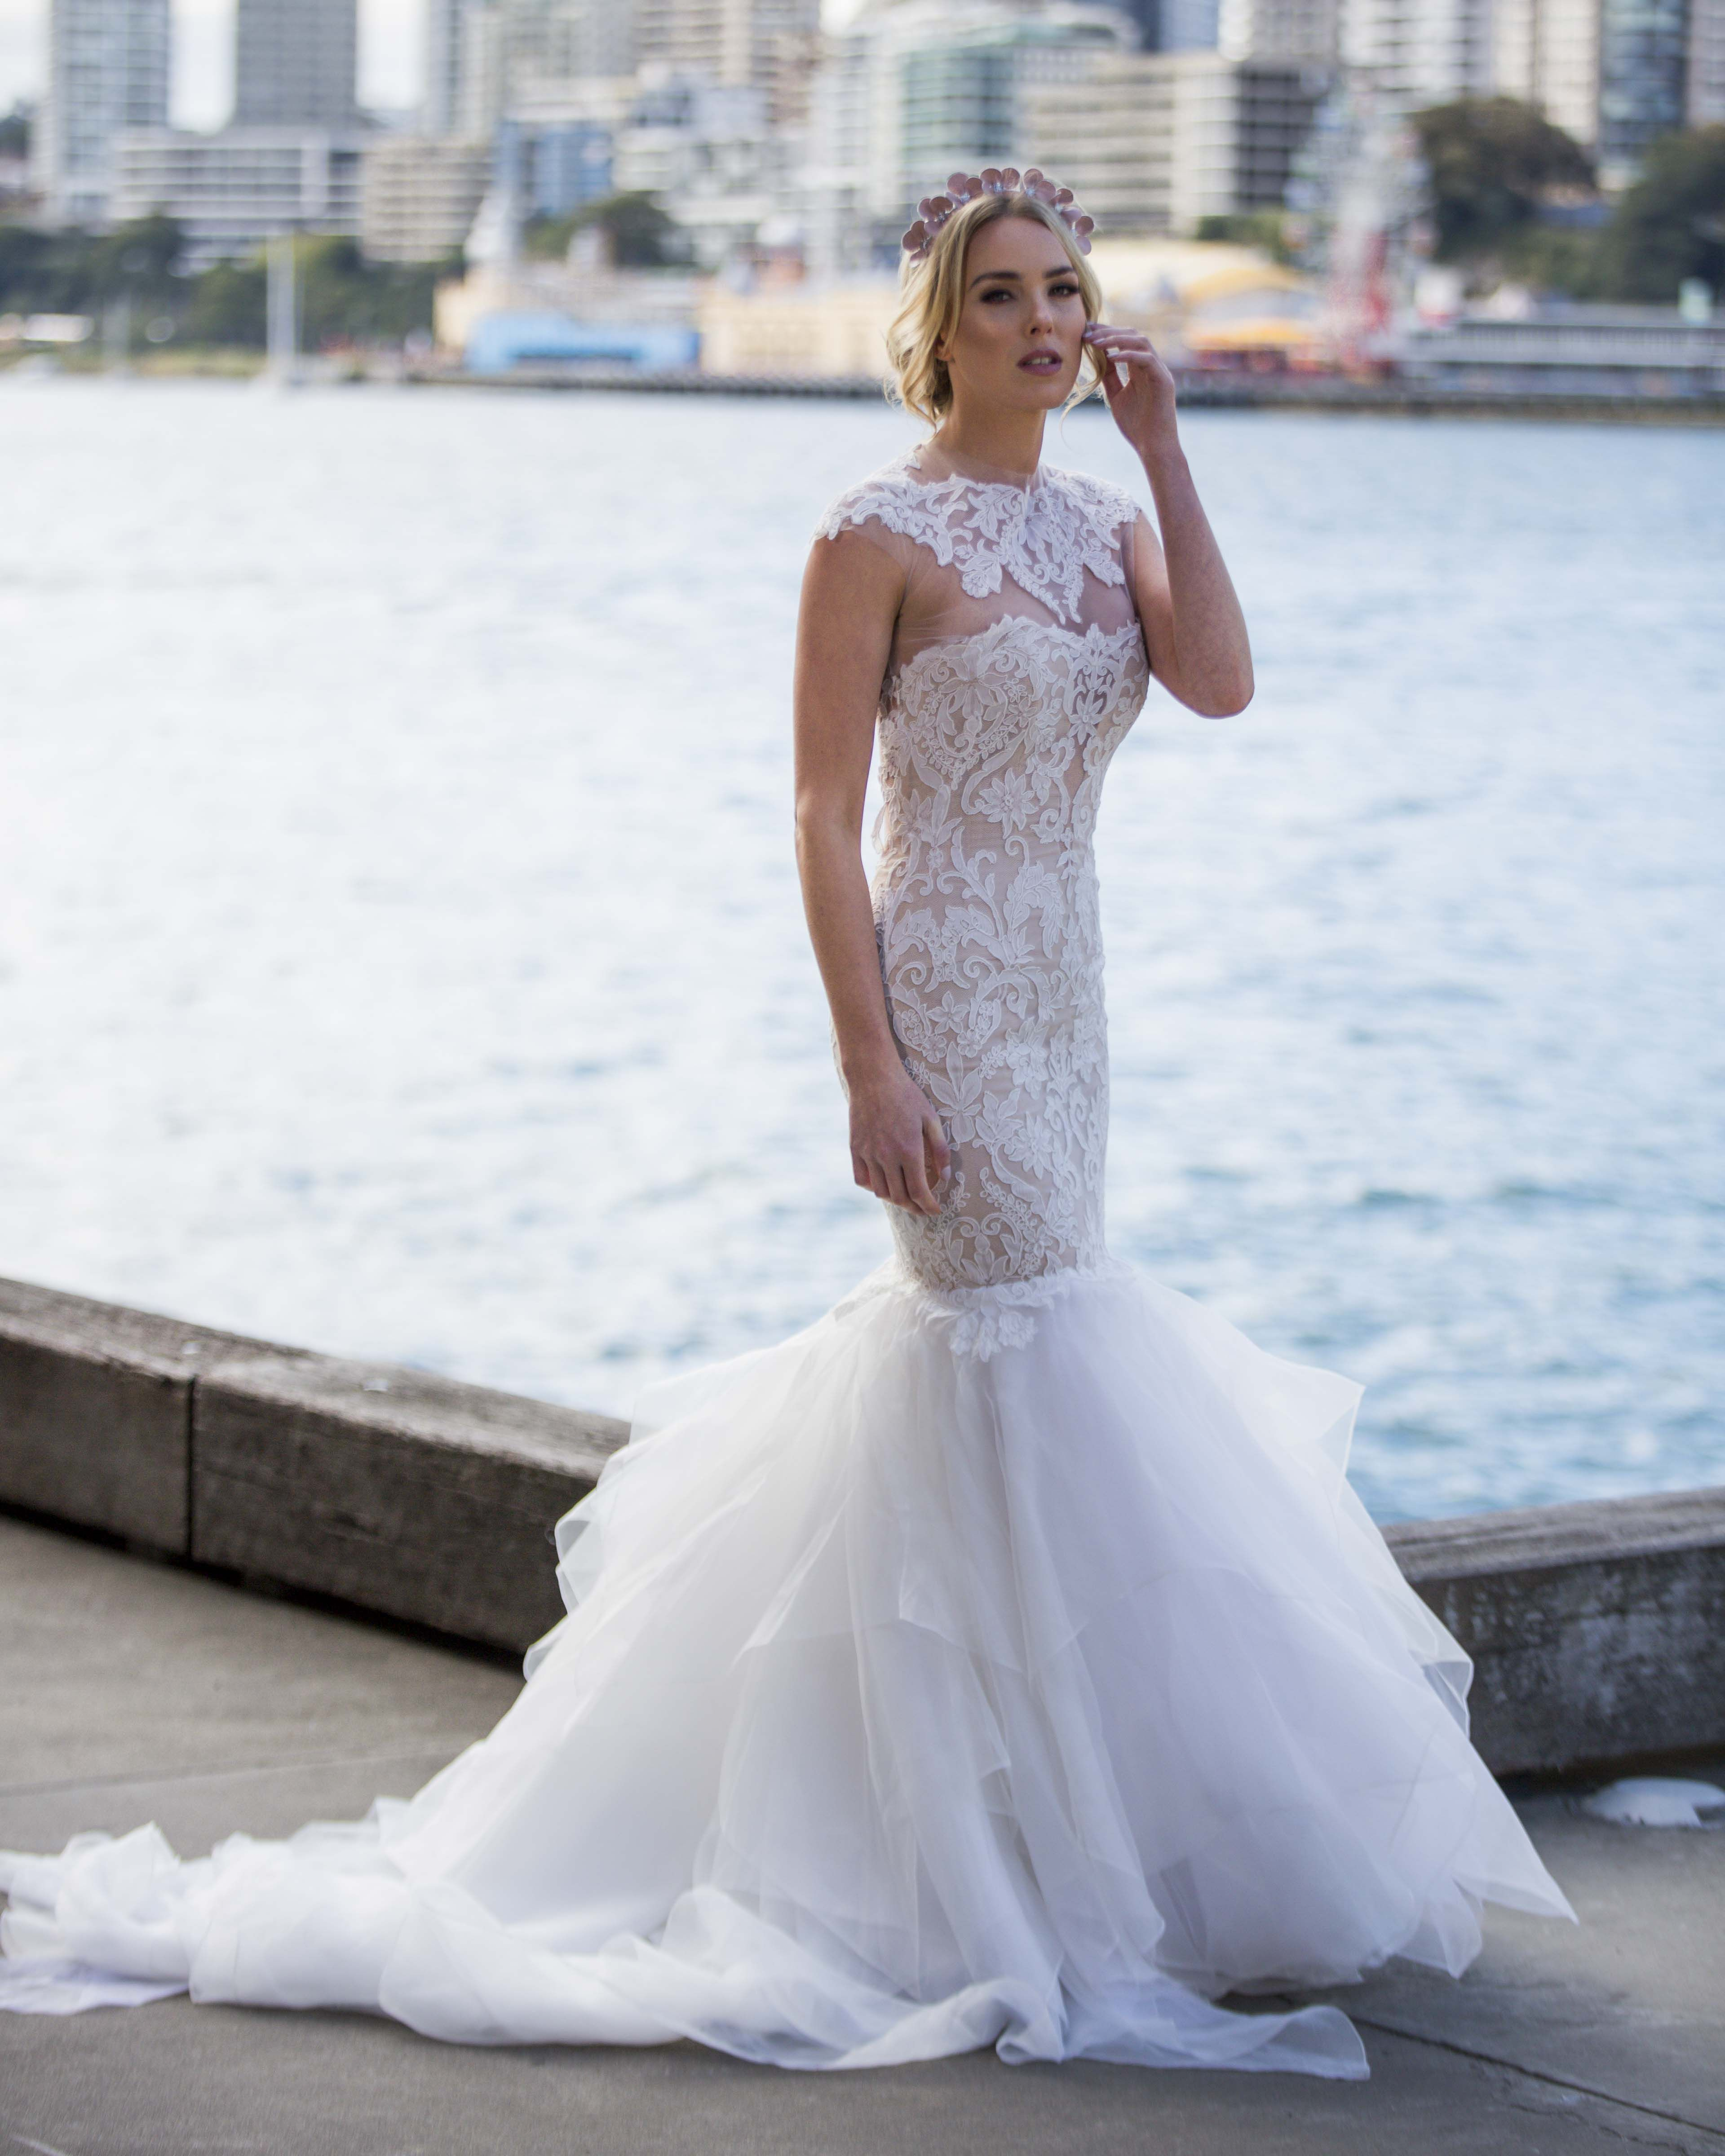 Gorgeous Sydney Photo shoot by @eternalbridal featuring Ines by Ines Di Santo Love gown | Head Pieces by Viktoria Novak | Photography by Inlighten Photography | Hair by Natalie Anne Hair | Makeup by Melissa Sassine Makeup